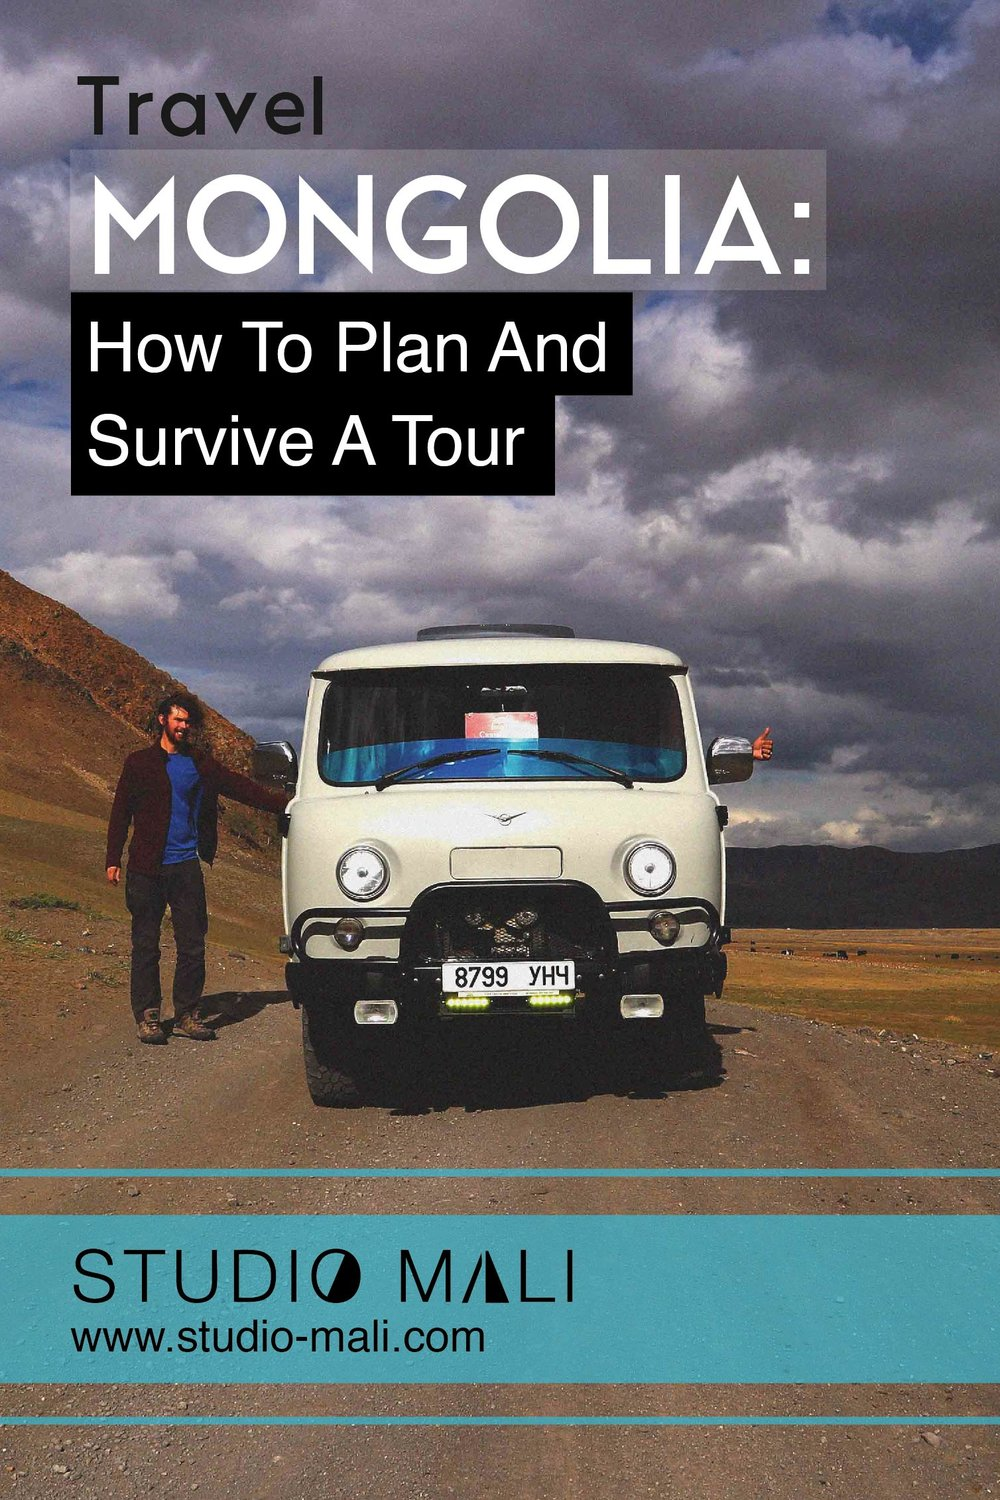 Mongolia - How To Plan And Survive A Tour, by Studio Mali.jpg